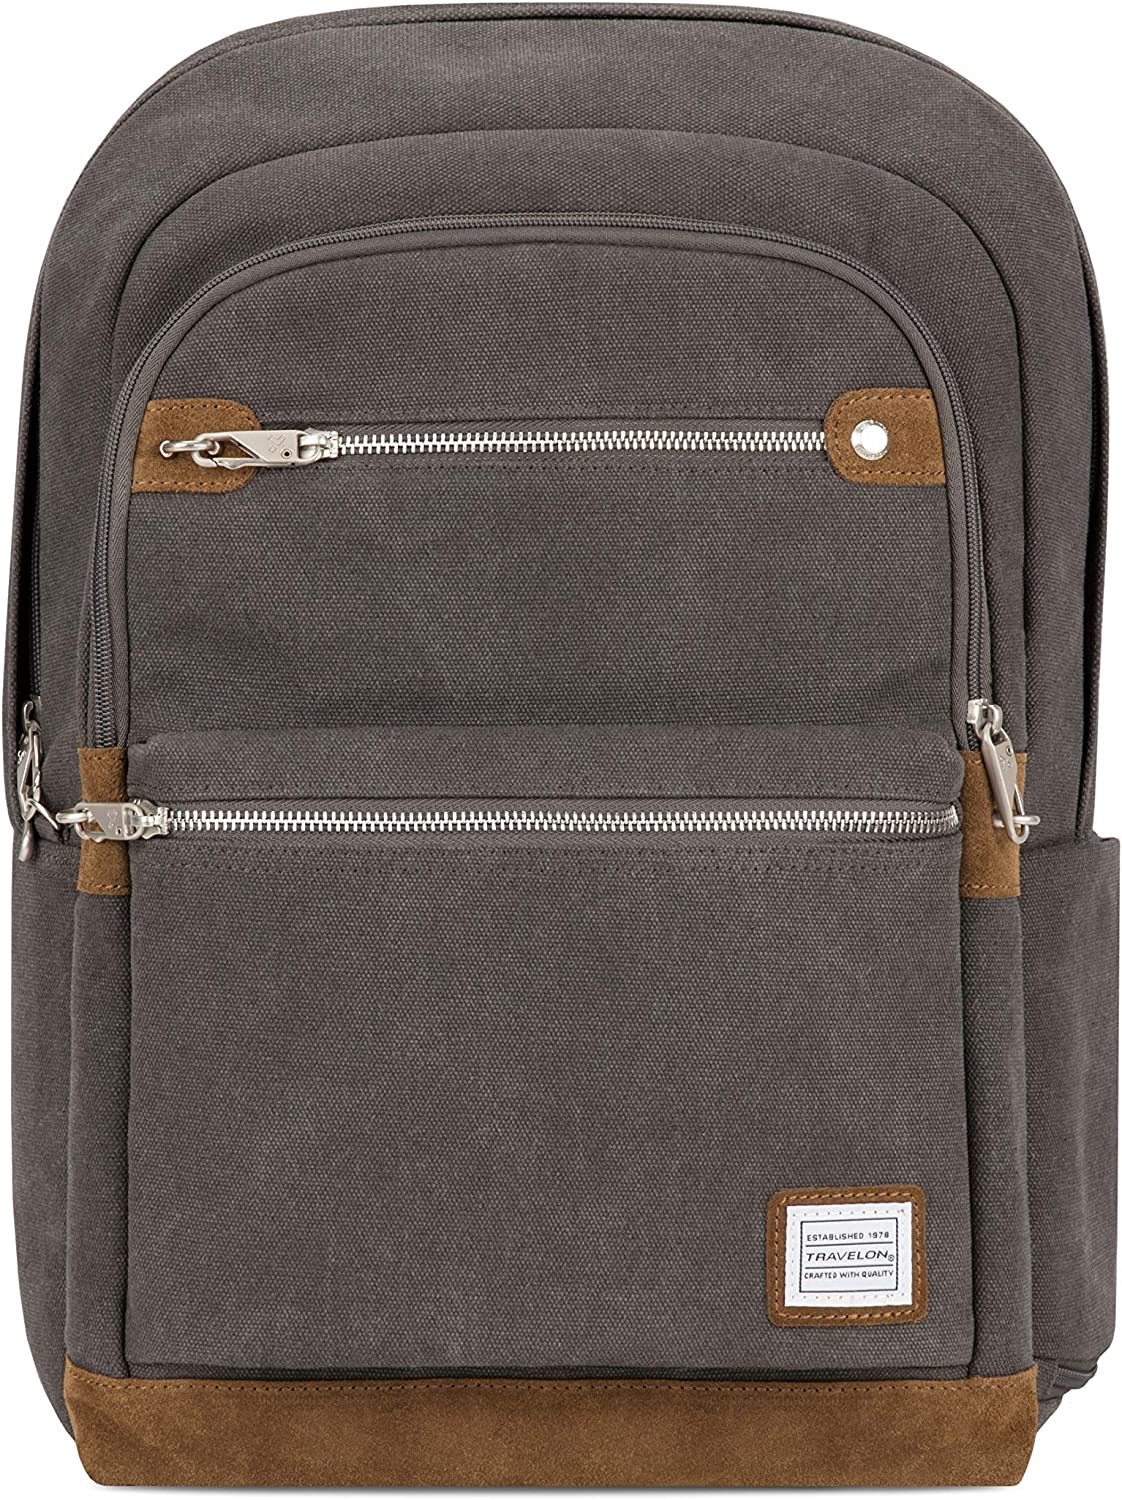 Travelon: Heritage - Anti-Theft Backpack